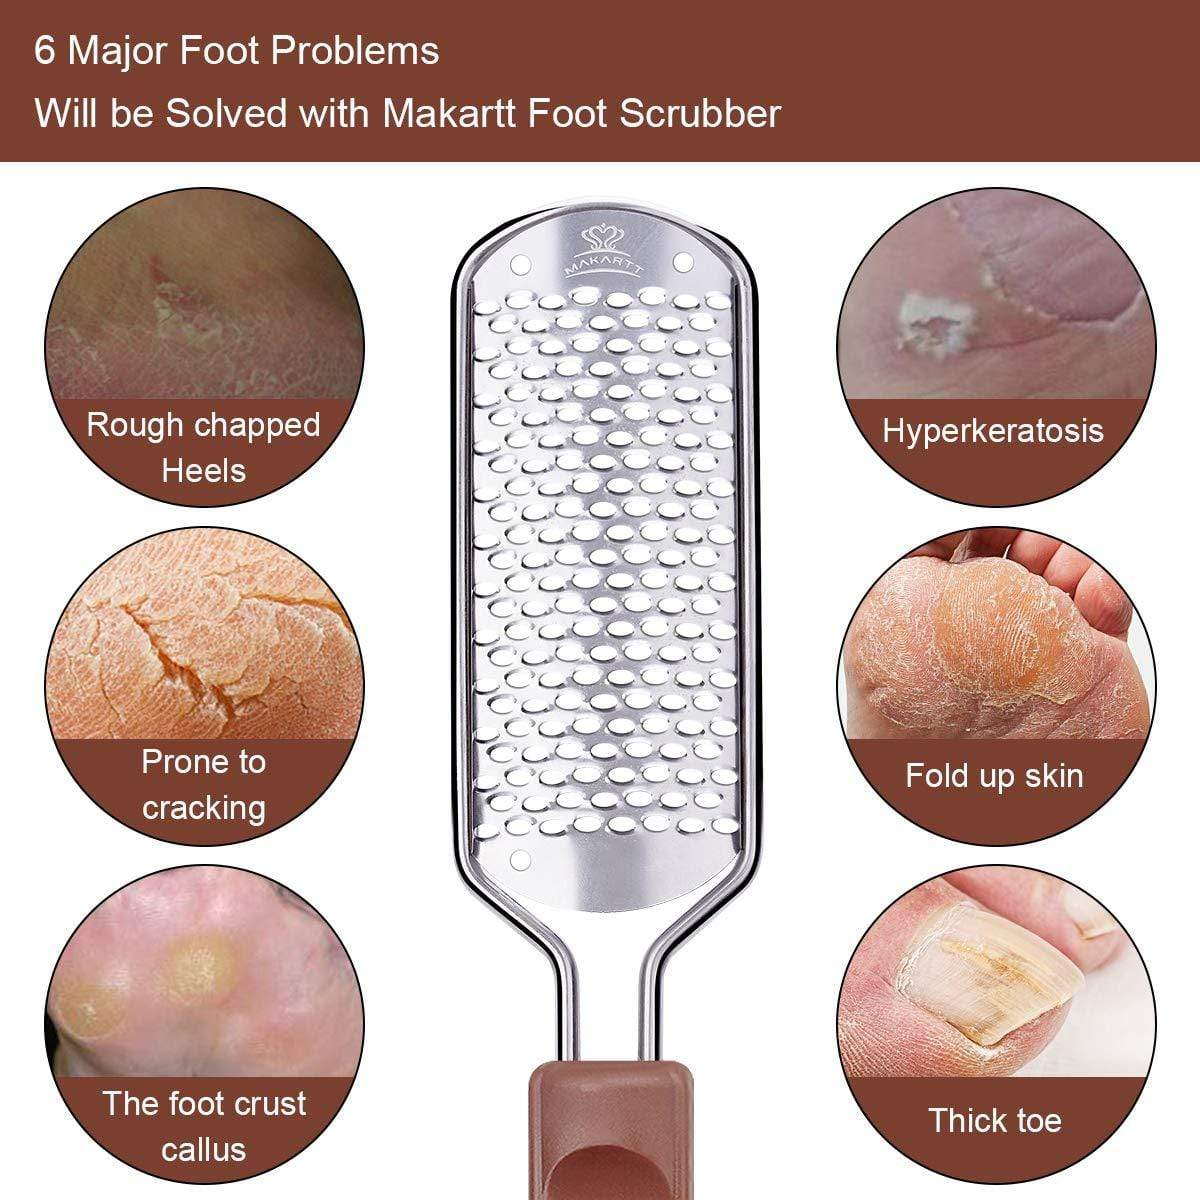 Stainless Steel Foot File - Makartt